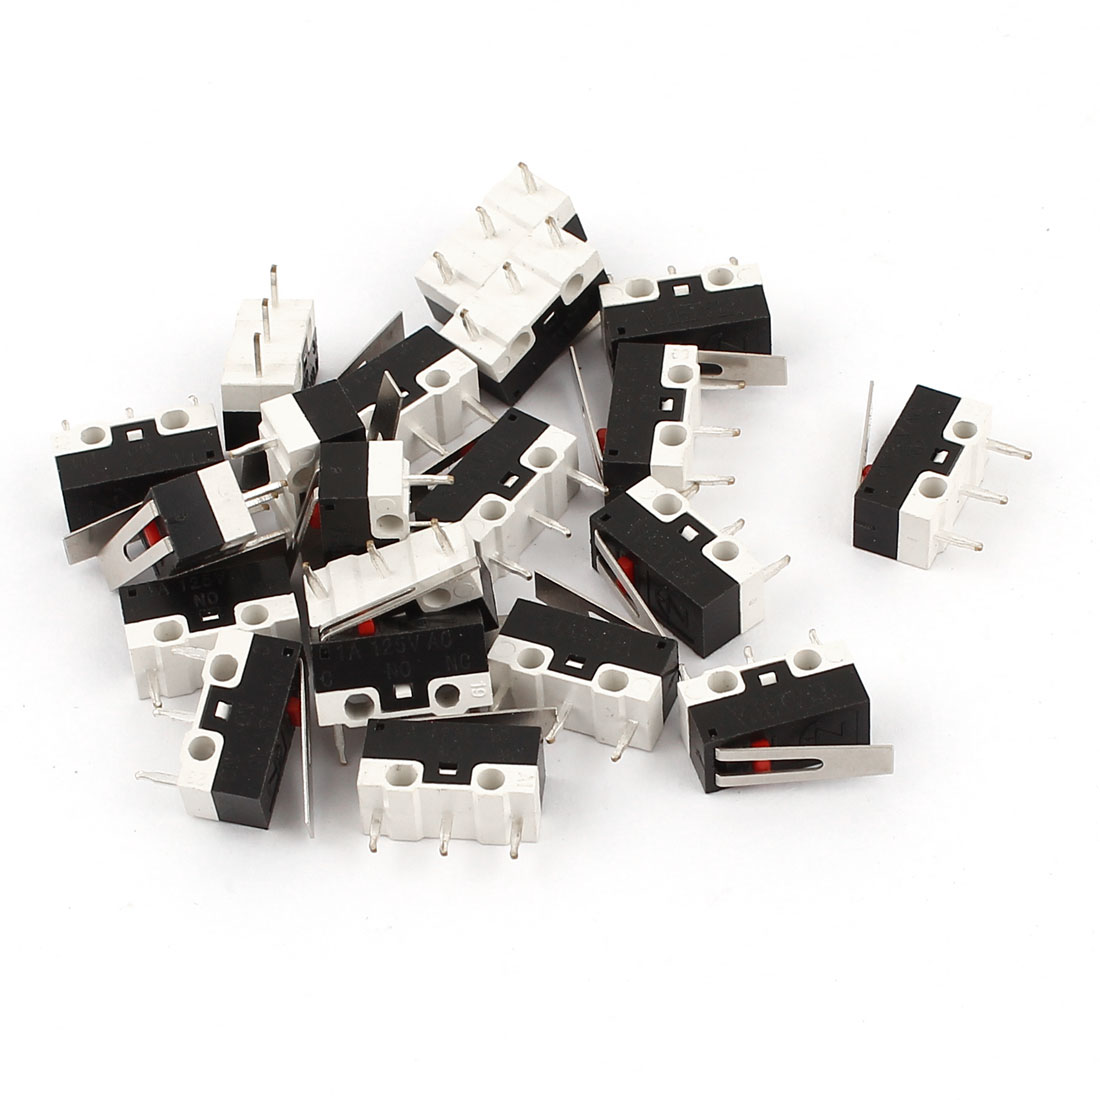 20 Pieces AC 125V 1A 3 Pin Terminal 1NO 1NC Momentary Action SPDT Micro Switches